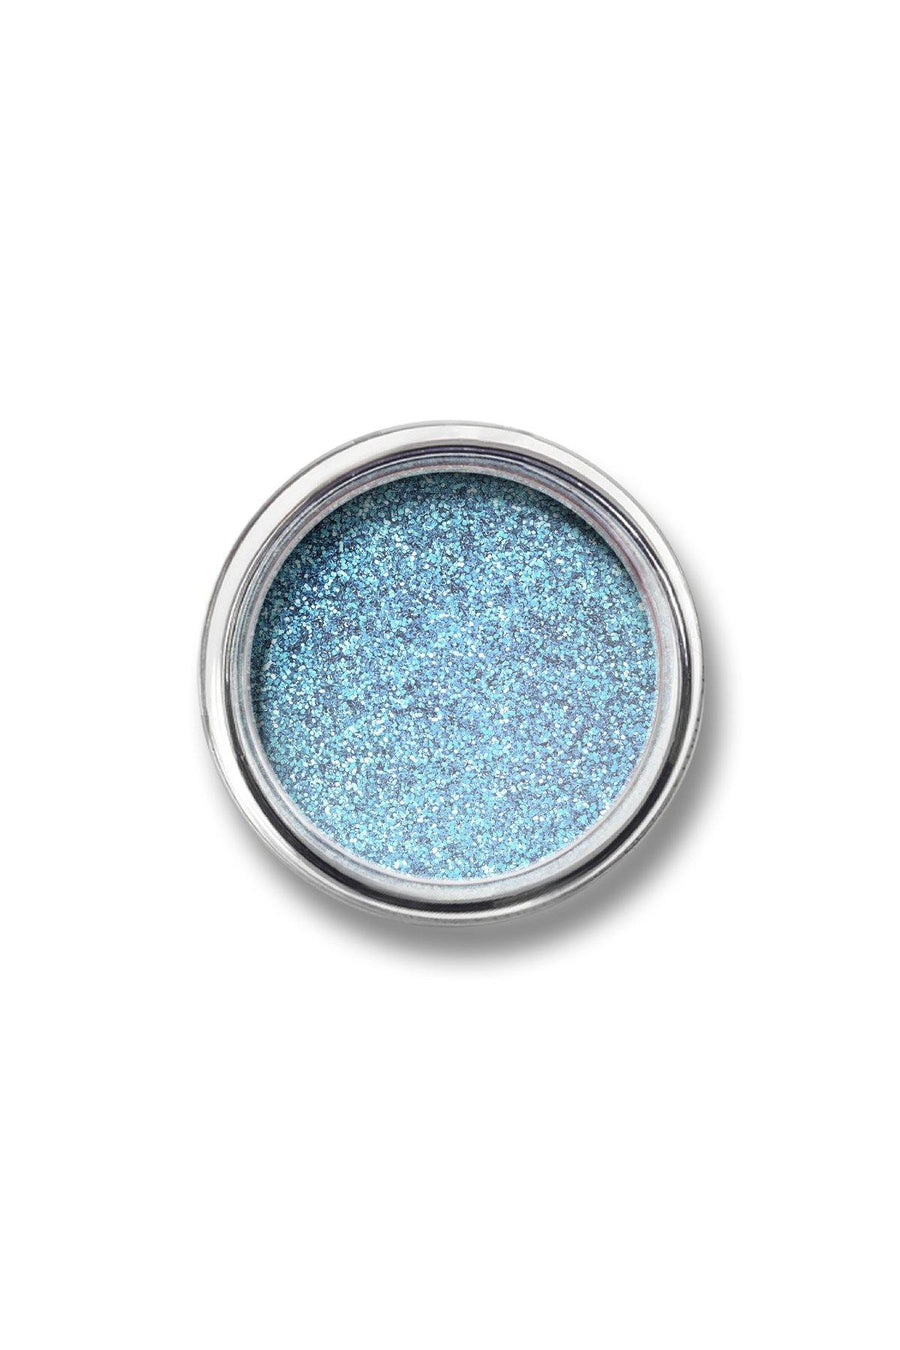 Glitter Powder #15 - Baby Blue - Blend Mineral Cosmetics